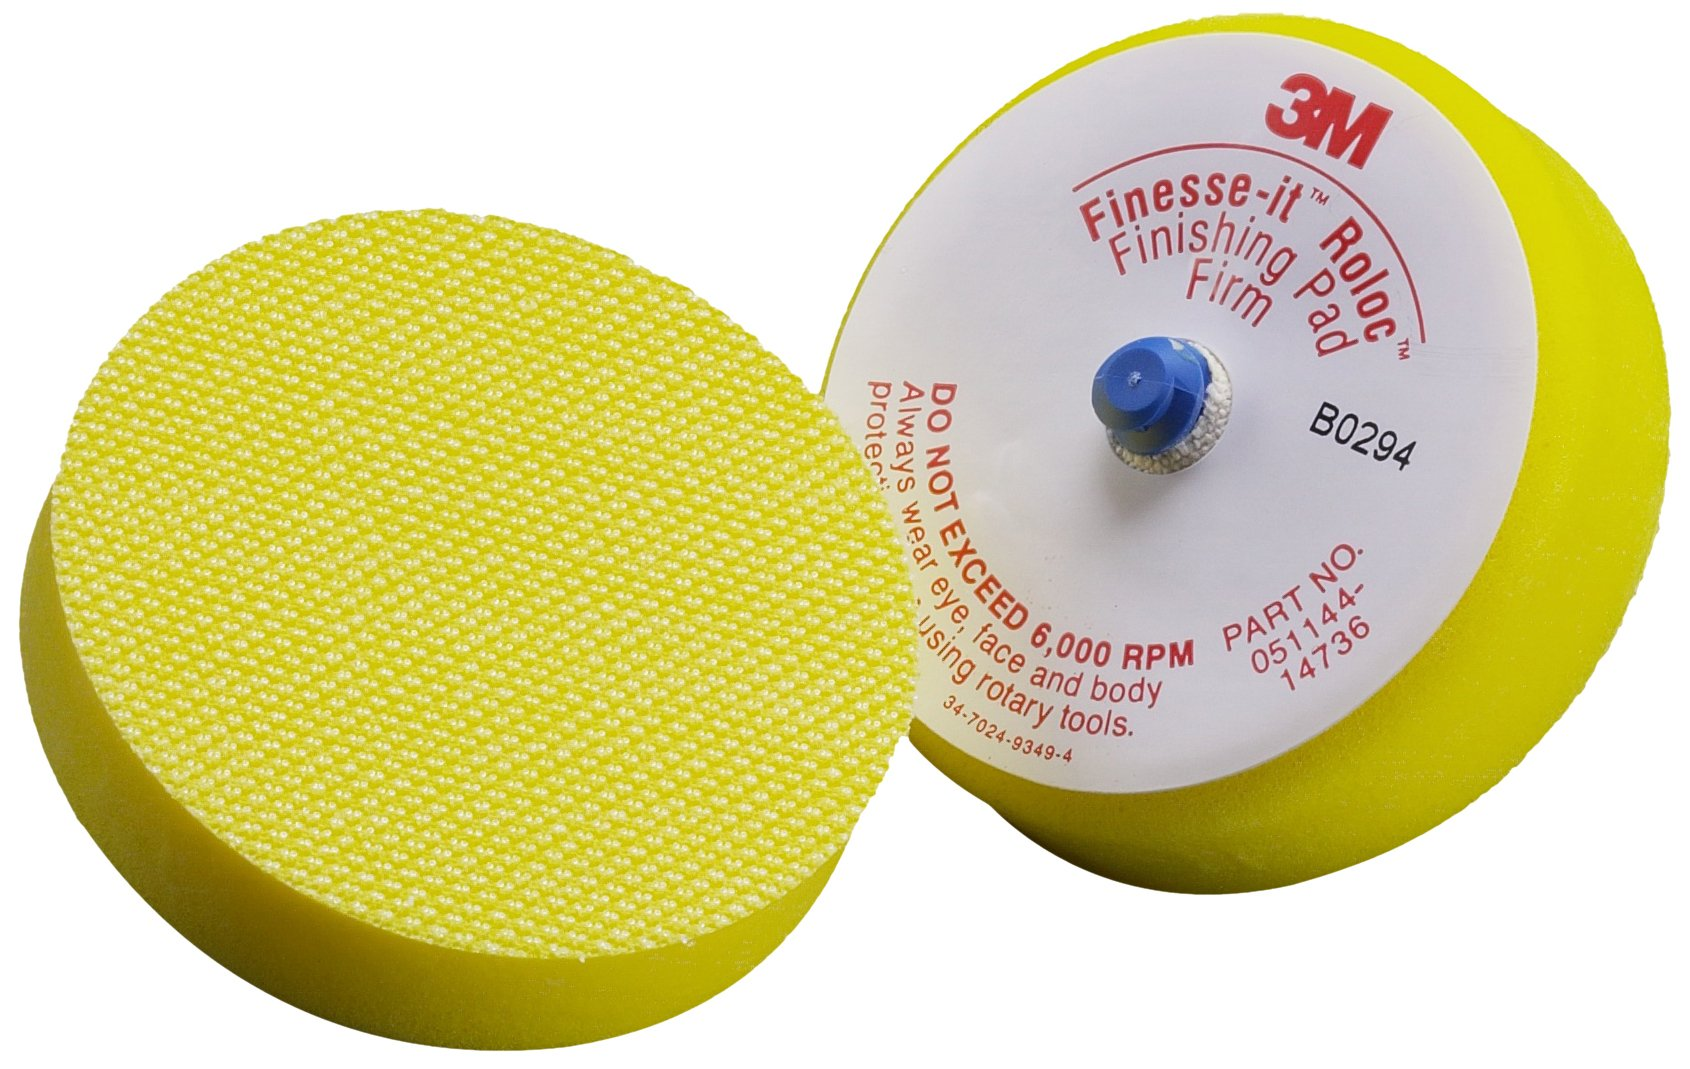 3M Finesse-it Roloc Finishing Disc Pad 14736V, Hook and Loop, 3'' Diameter x 1'' Thick, Yellow (Pack of 12) by Cubitron